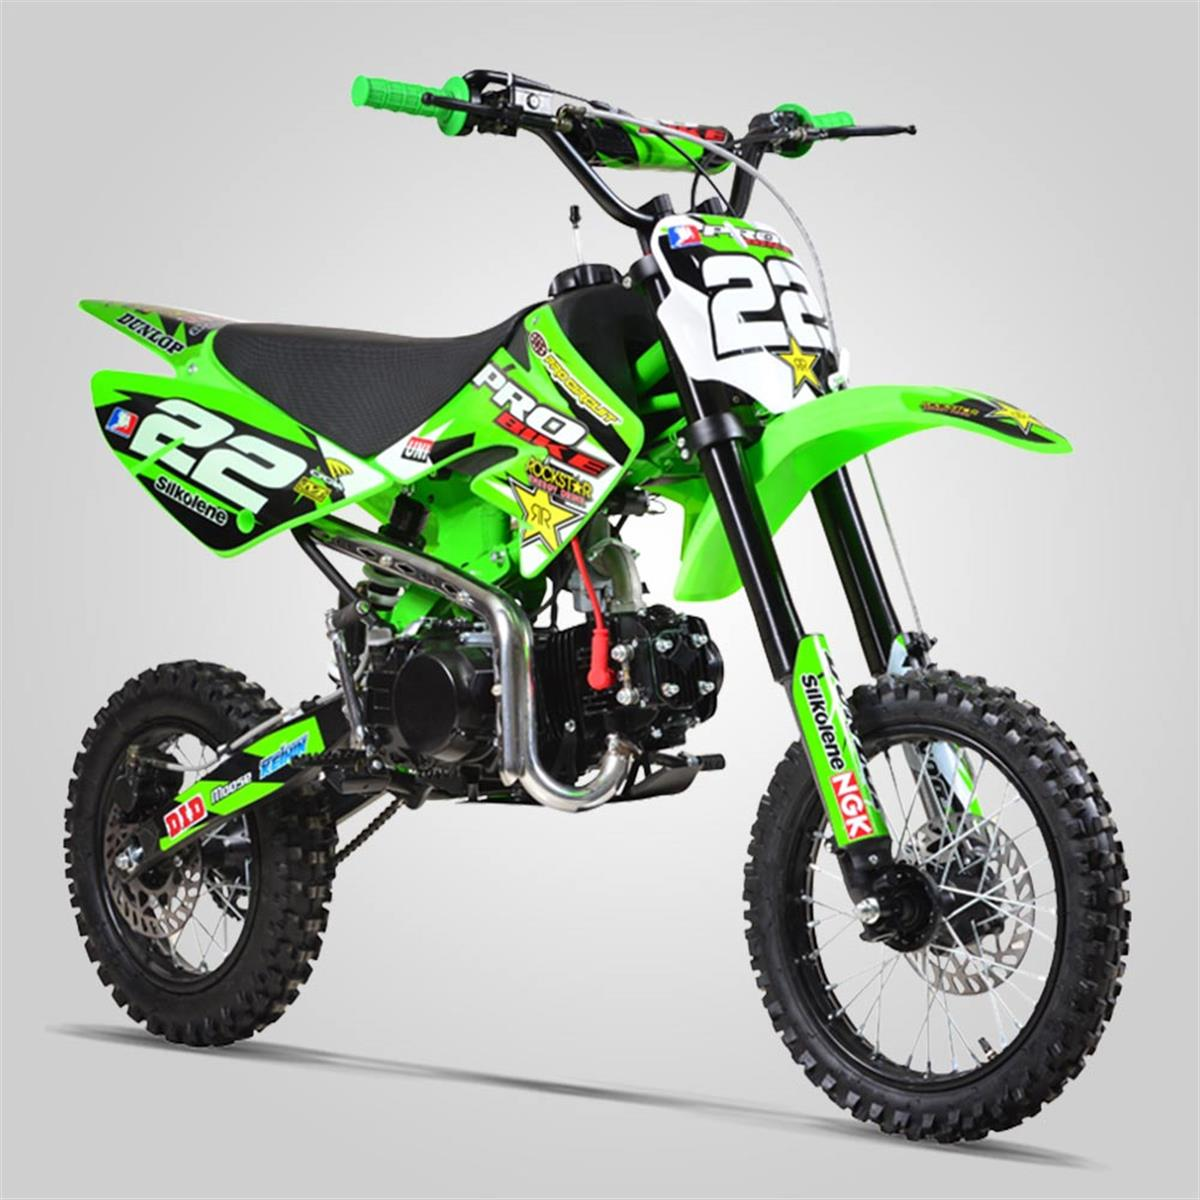 dirt bike 140cc probike yx s 14 17 sur small mx smallmx dirt bike pit bike quads minimoto. Black Bedroom Furniture Sets. Home Design Ideas